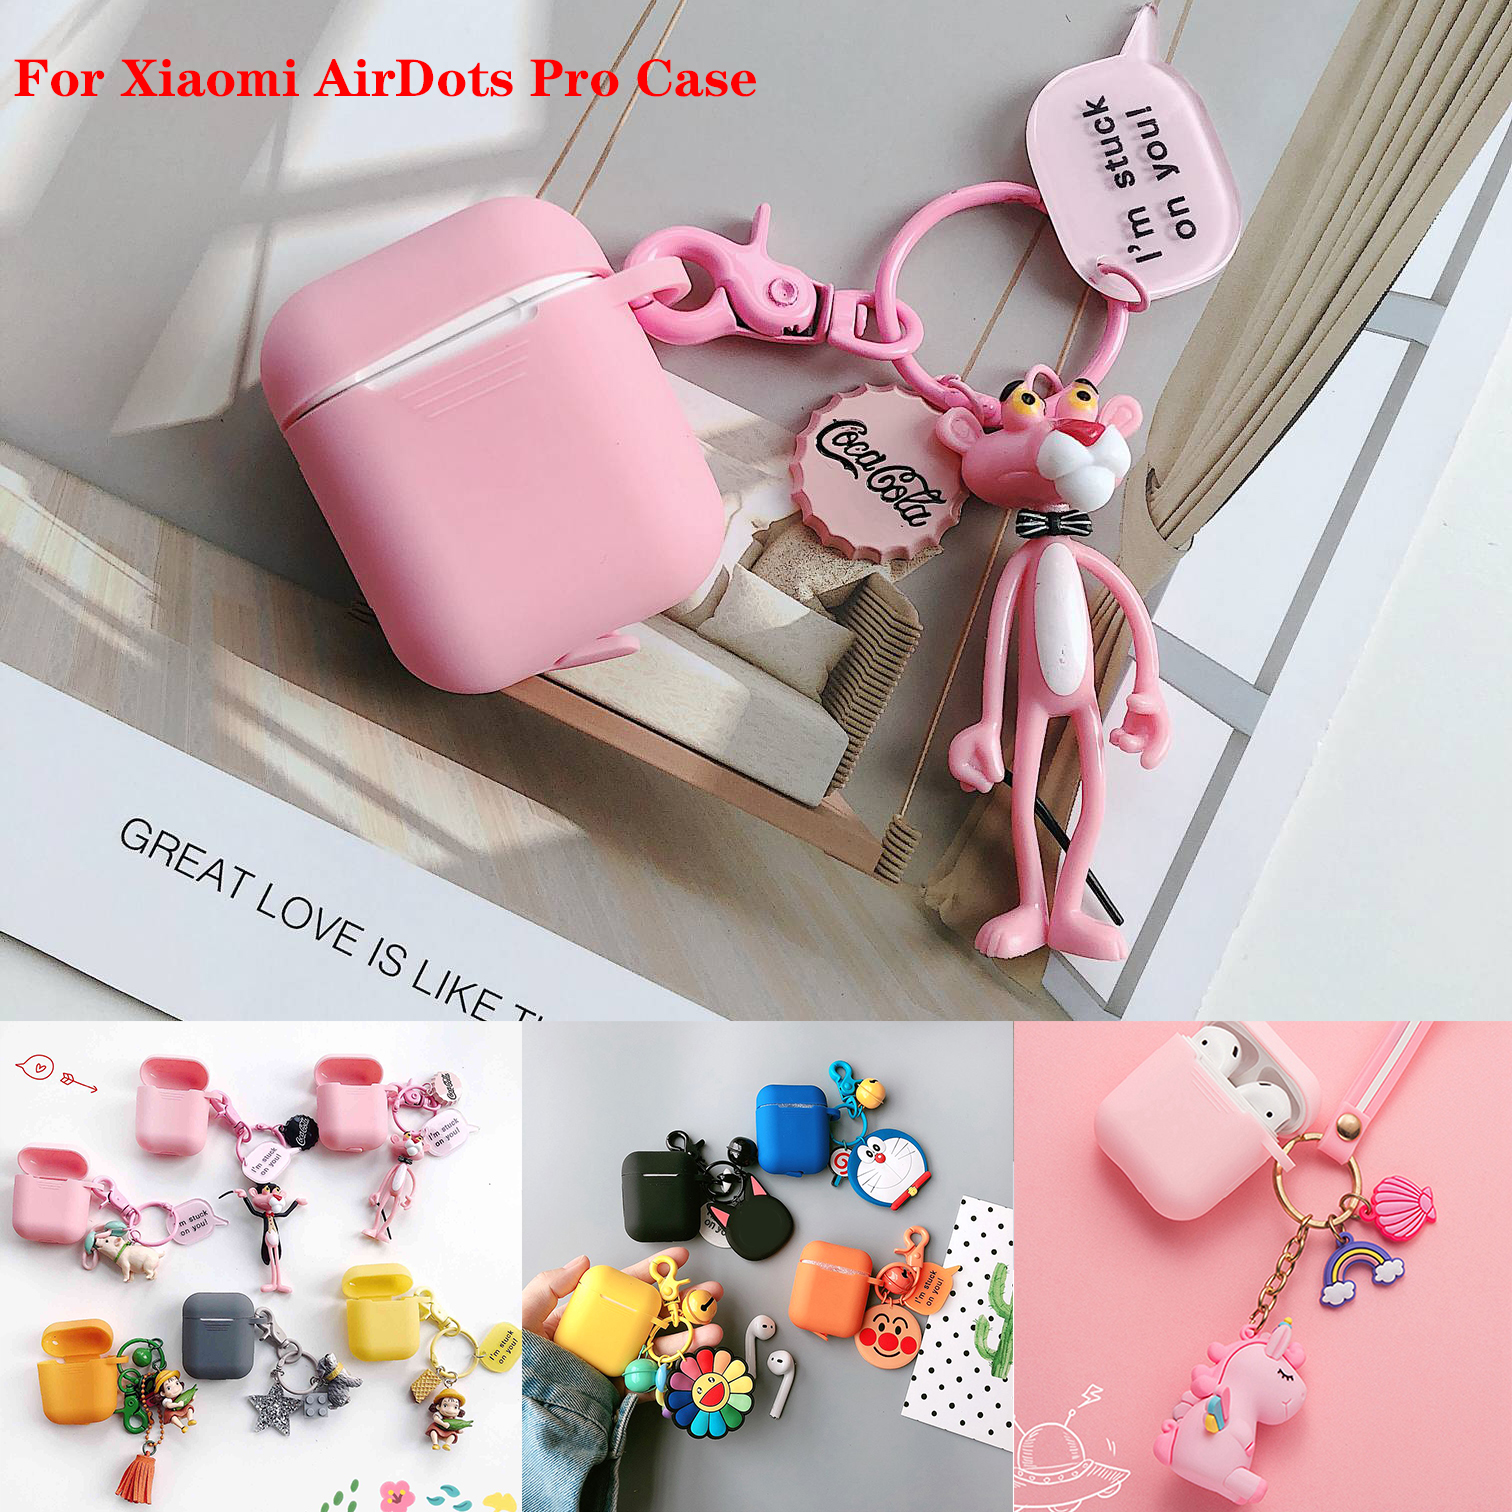 For Xiaomi AirDots Pro Case Catroon Cute With Keychain Accessories Silicone Case For Xiaomi MI Air Wireless Earphone Cover